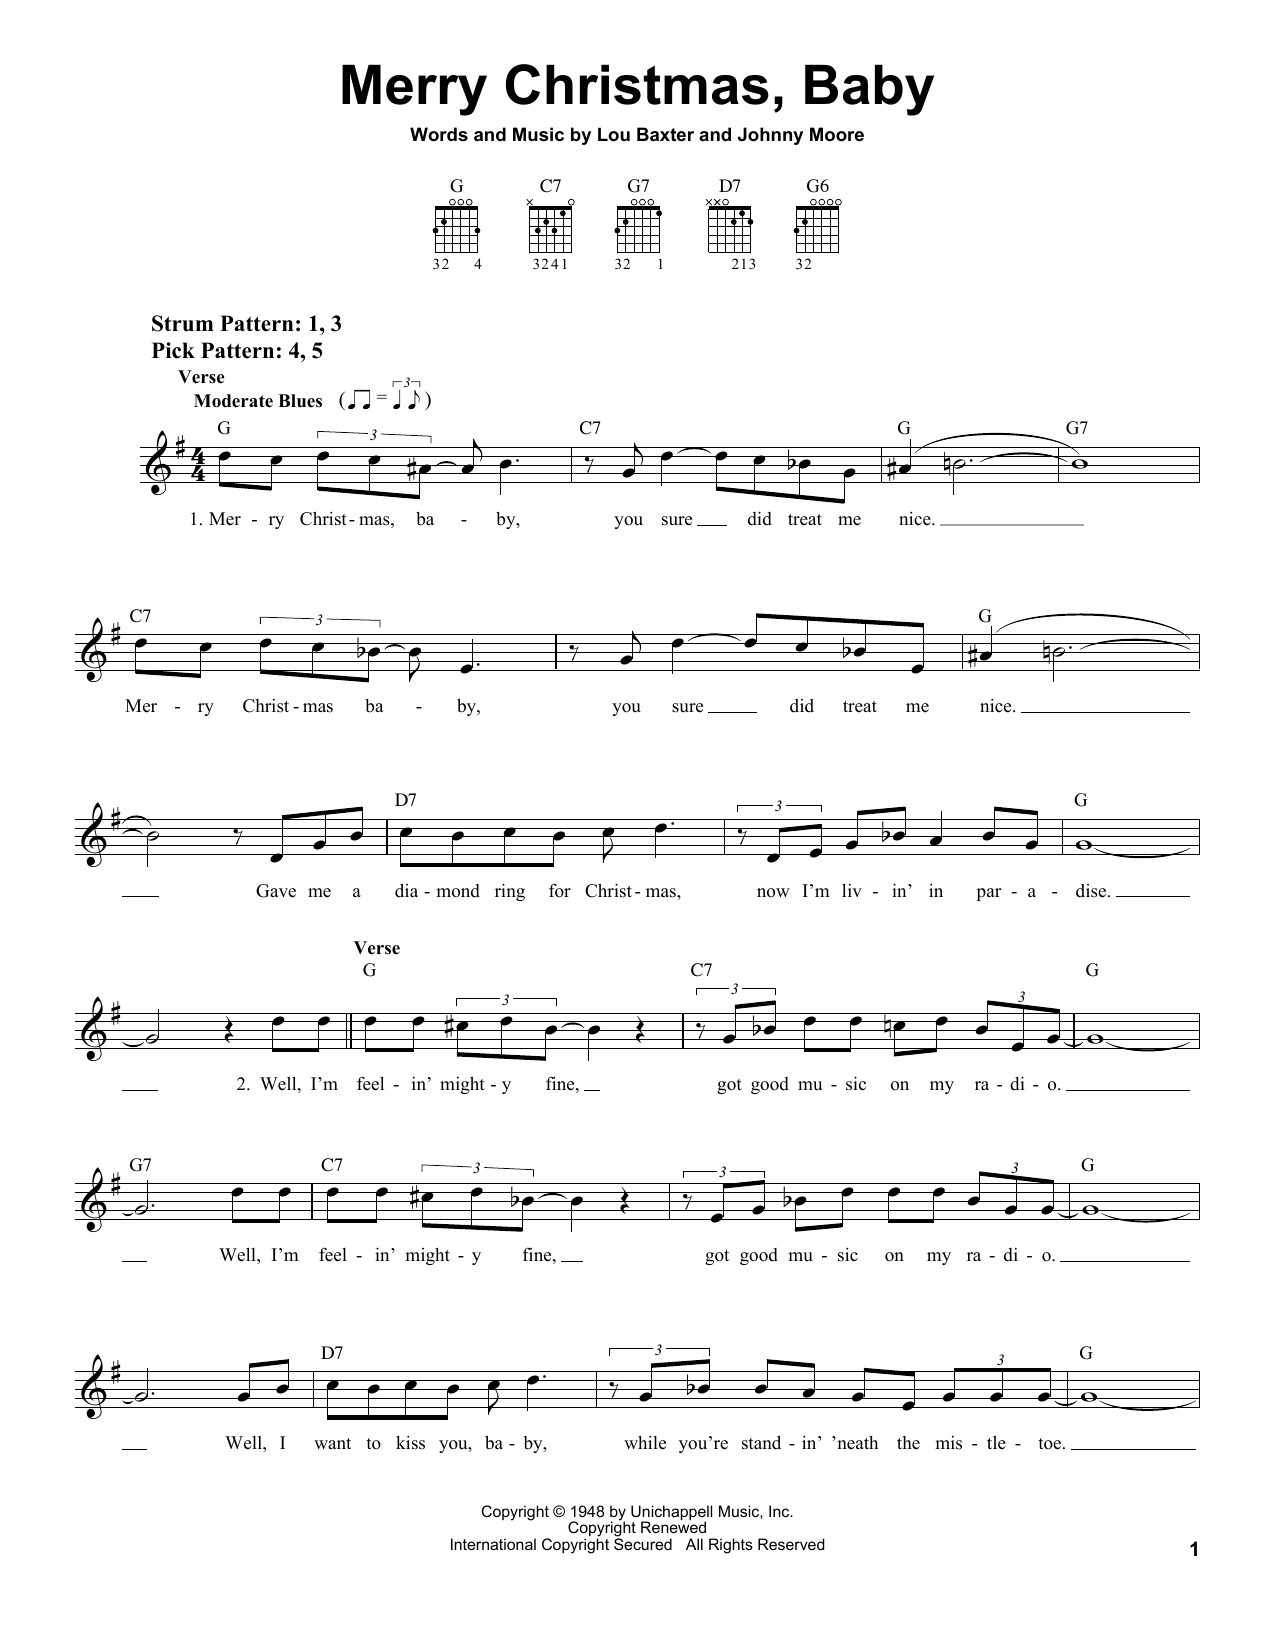 Elvis Presley Merry Christmas, Baby sheet music notes and chords. Download Printable PDF.